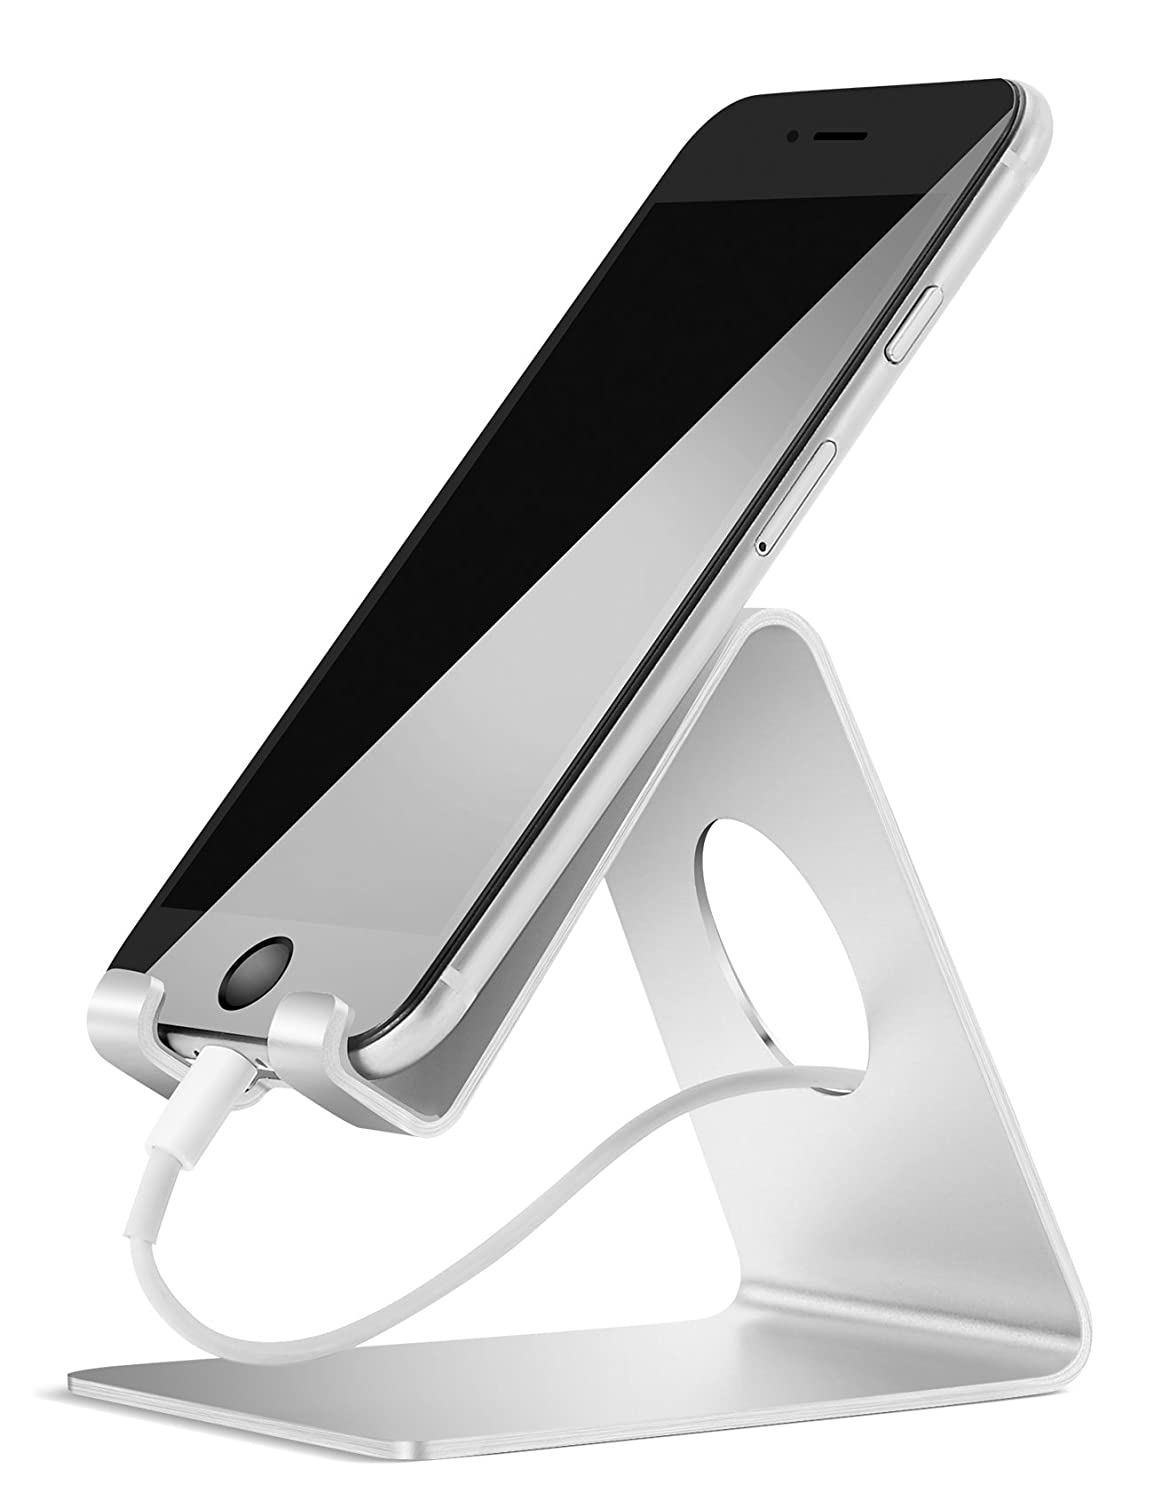 Supporto Telefono, Lamicall Dock iPhone : Universale Supporto Dock per iPhone 7 6 6s plus 4 4s 5 5s se, Nintendo Switch, HUAWEI, Samsung Note 4, Note 5, Note 6, S3 S4 S5 S6 S7 S8, Accessori, Scrivania, Altri Smartphone - Argento